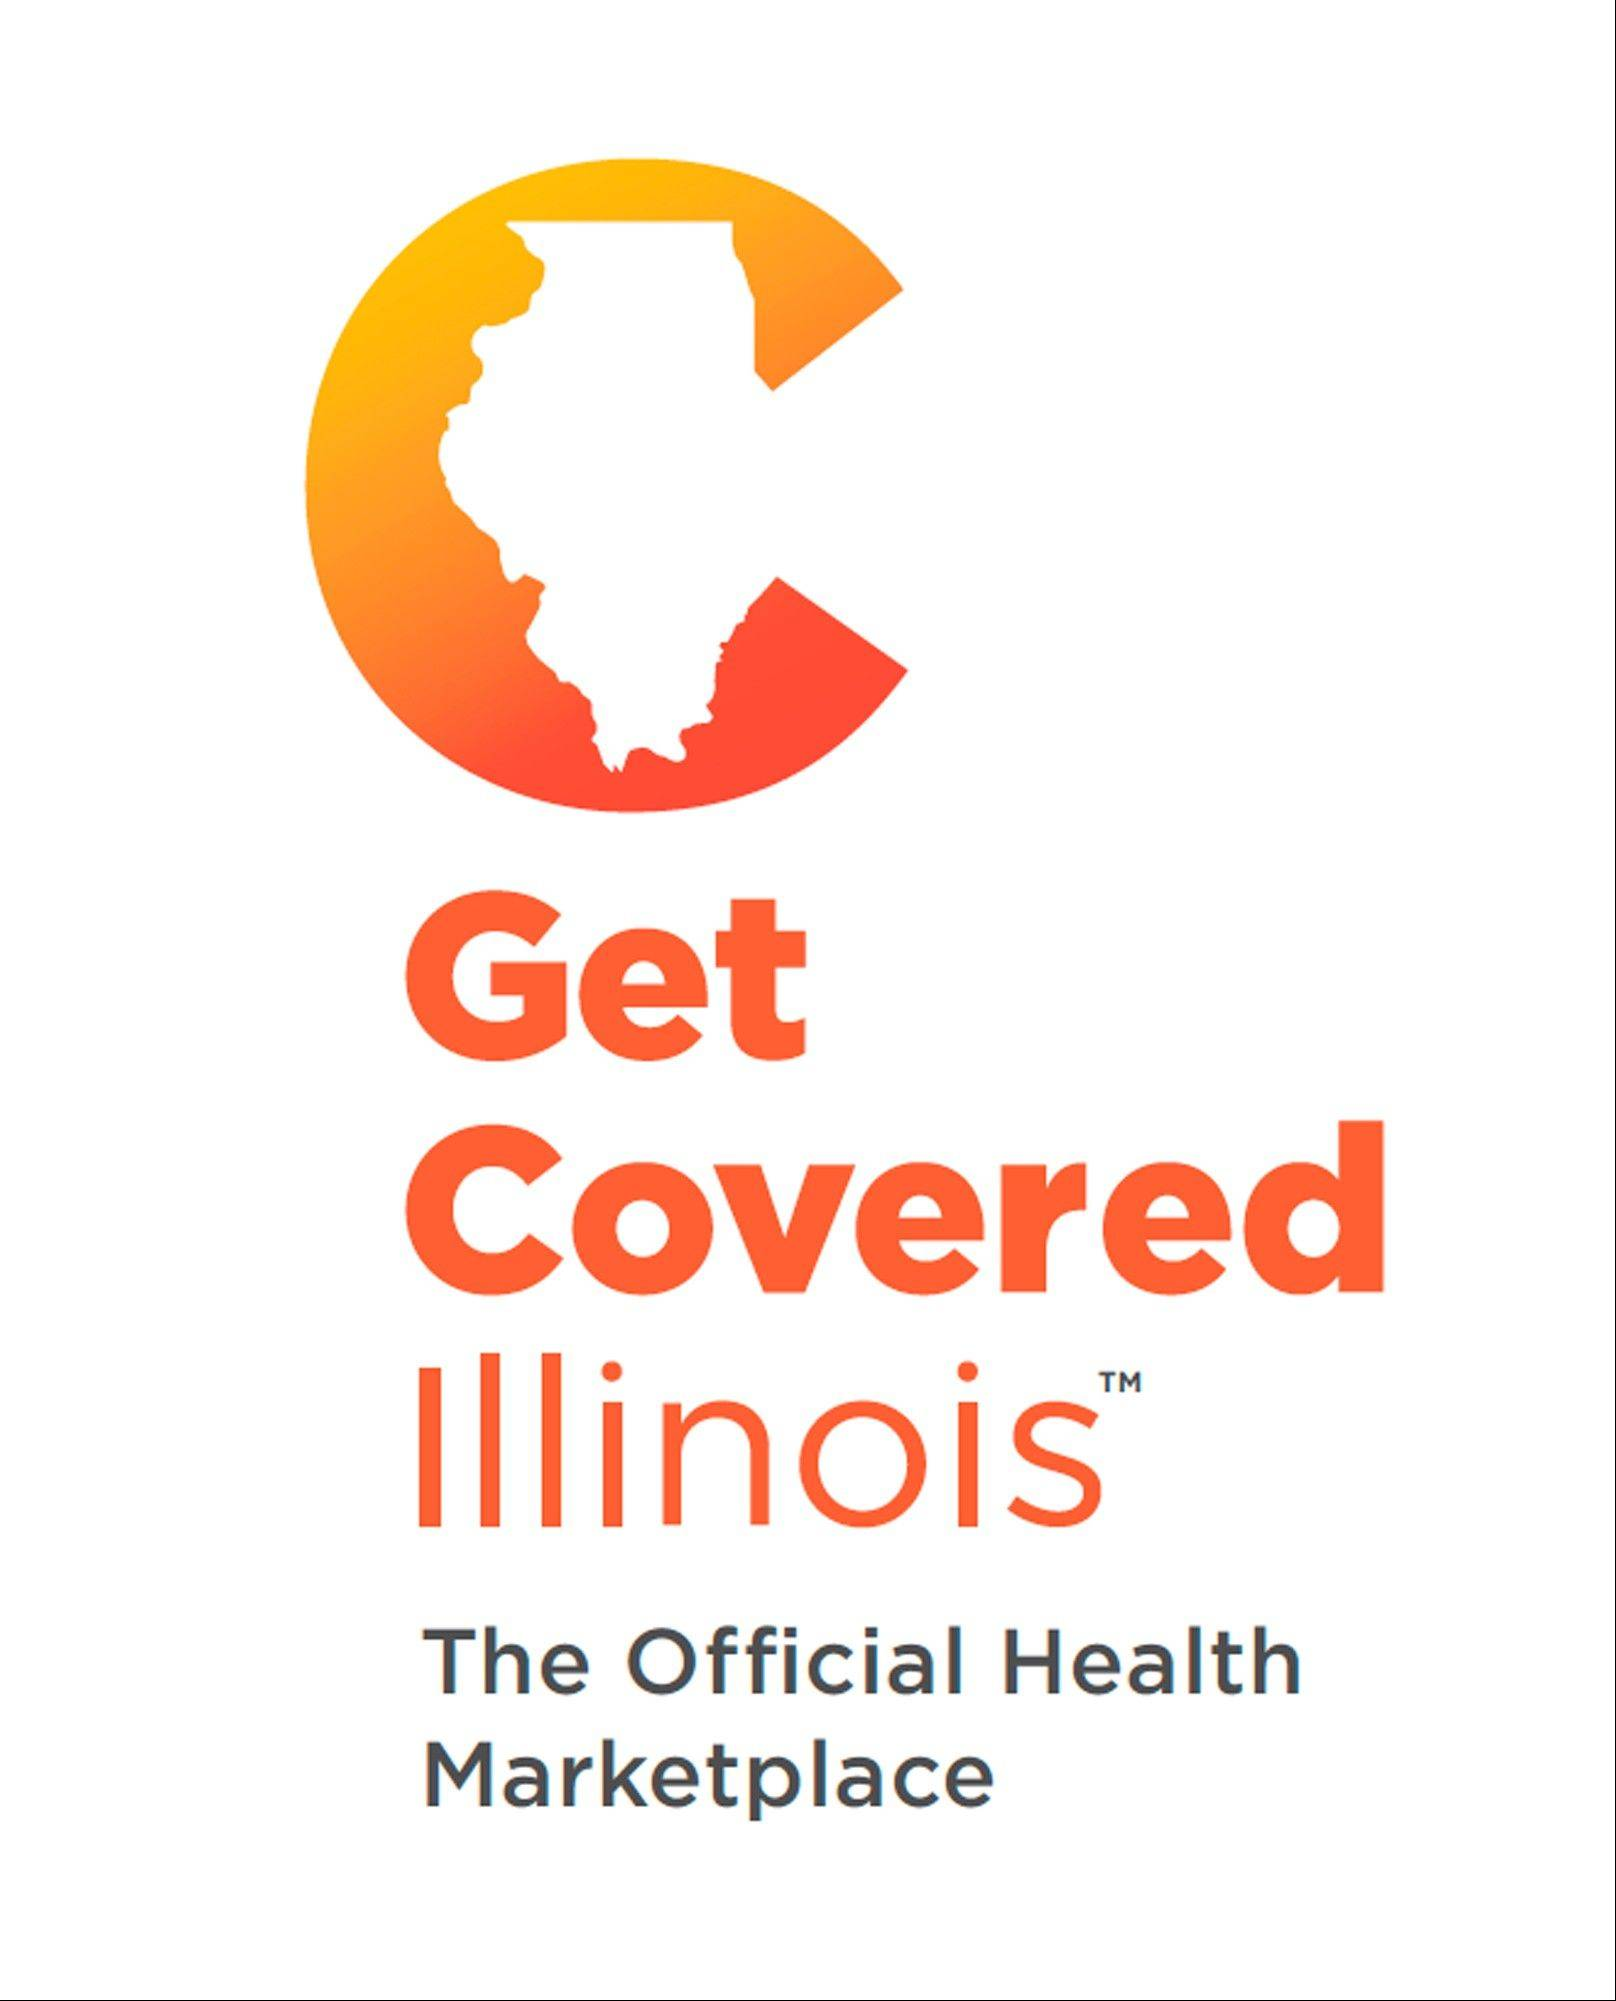 Illinois TV ads push health insurance